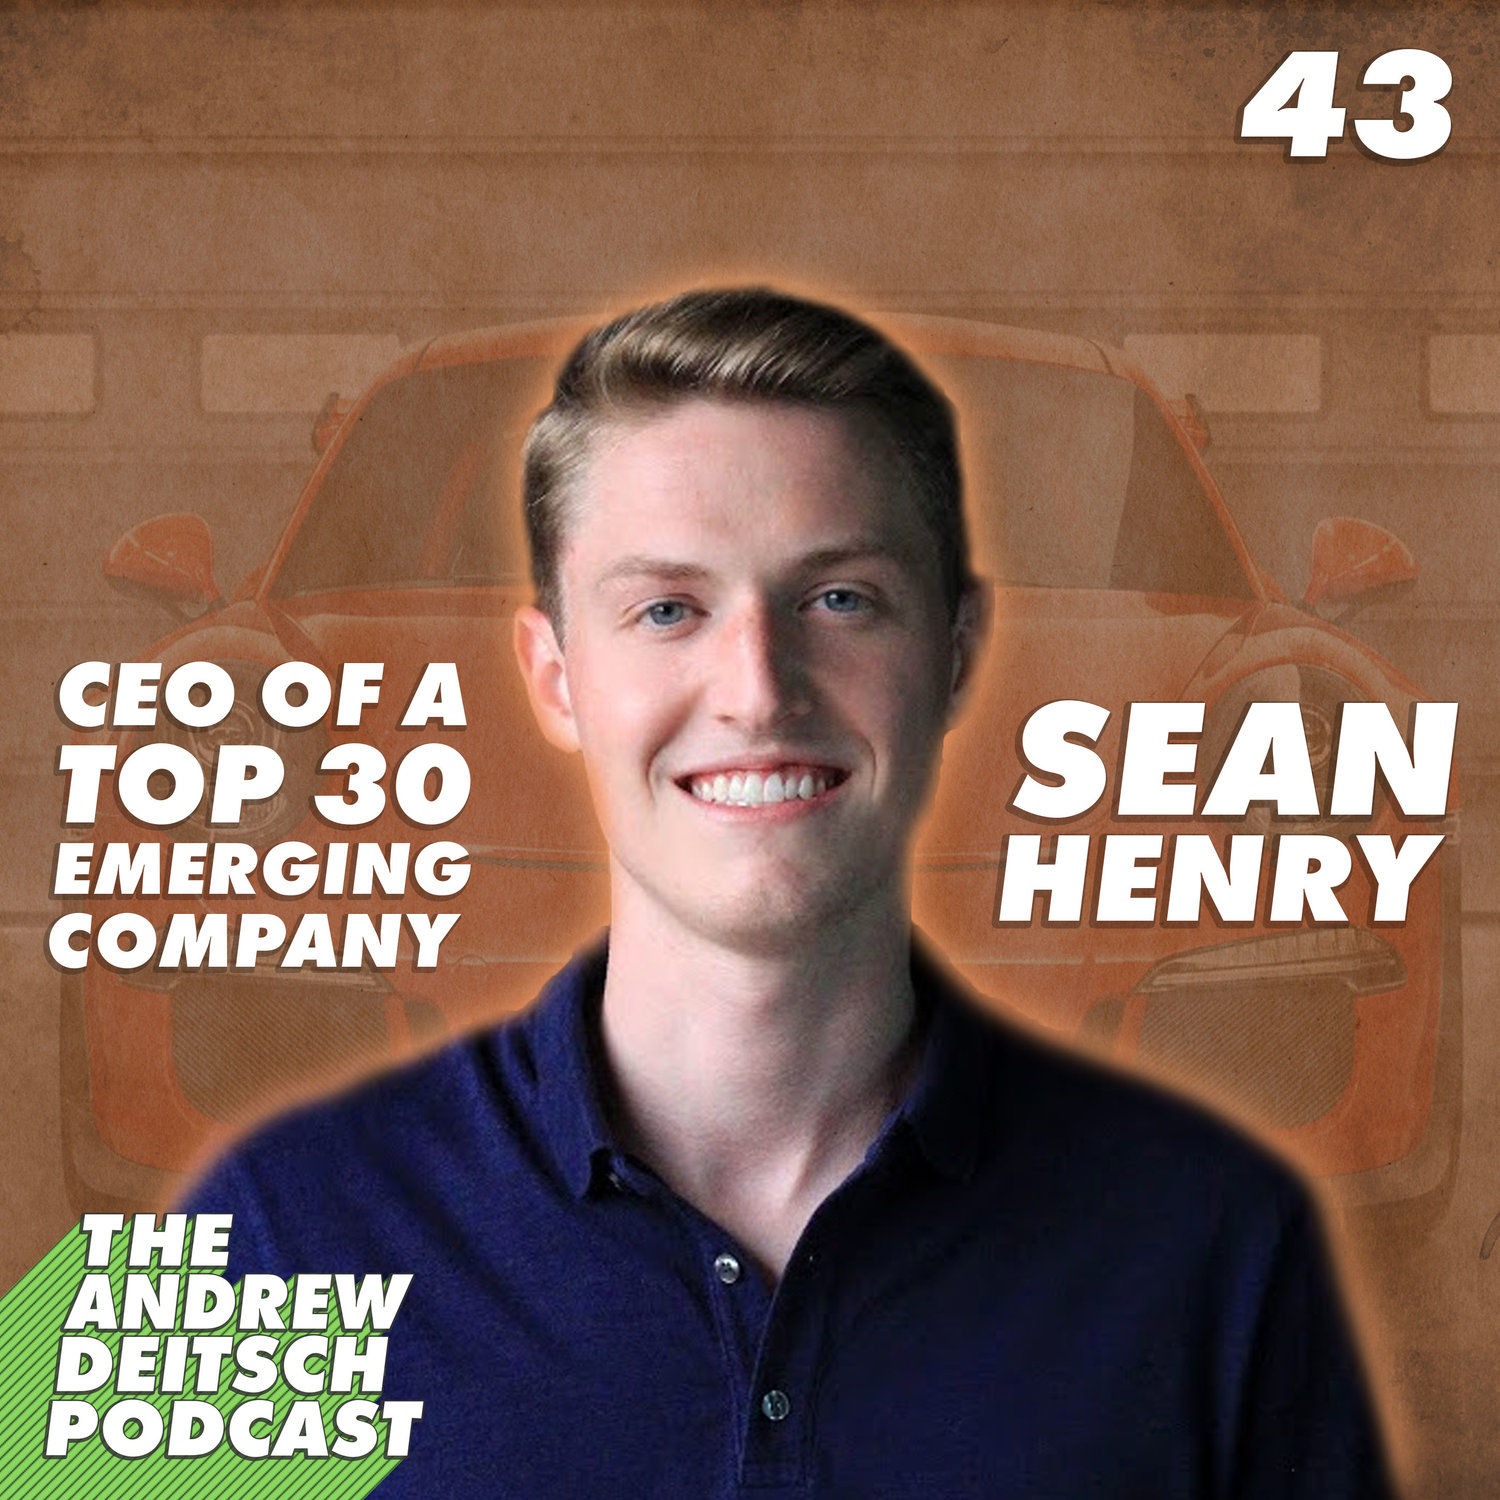 43 Henry 43 Ceo Of A Top 30 Emerging Company Sean Henry Andrew Deitsch